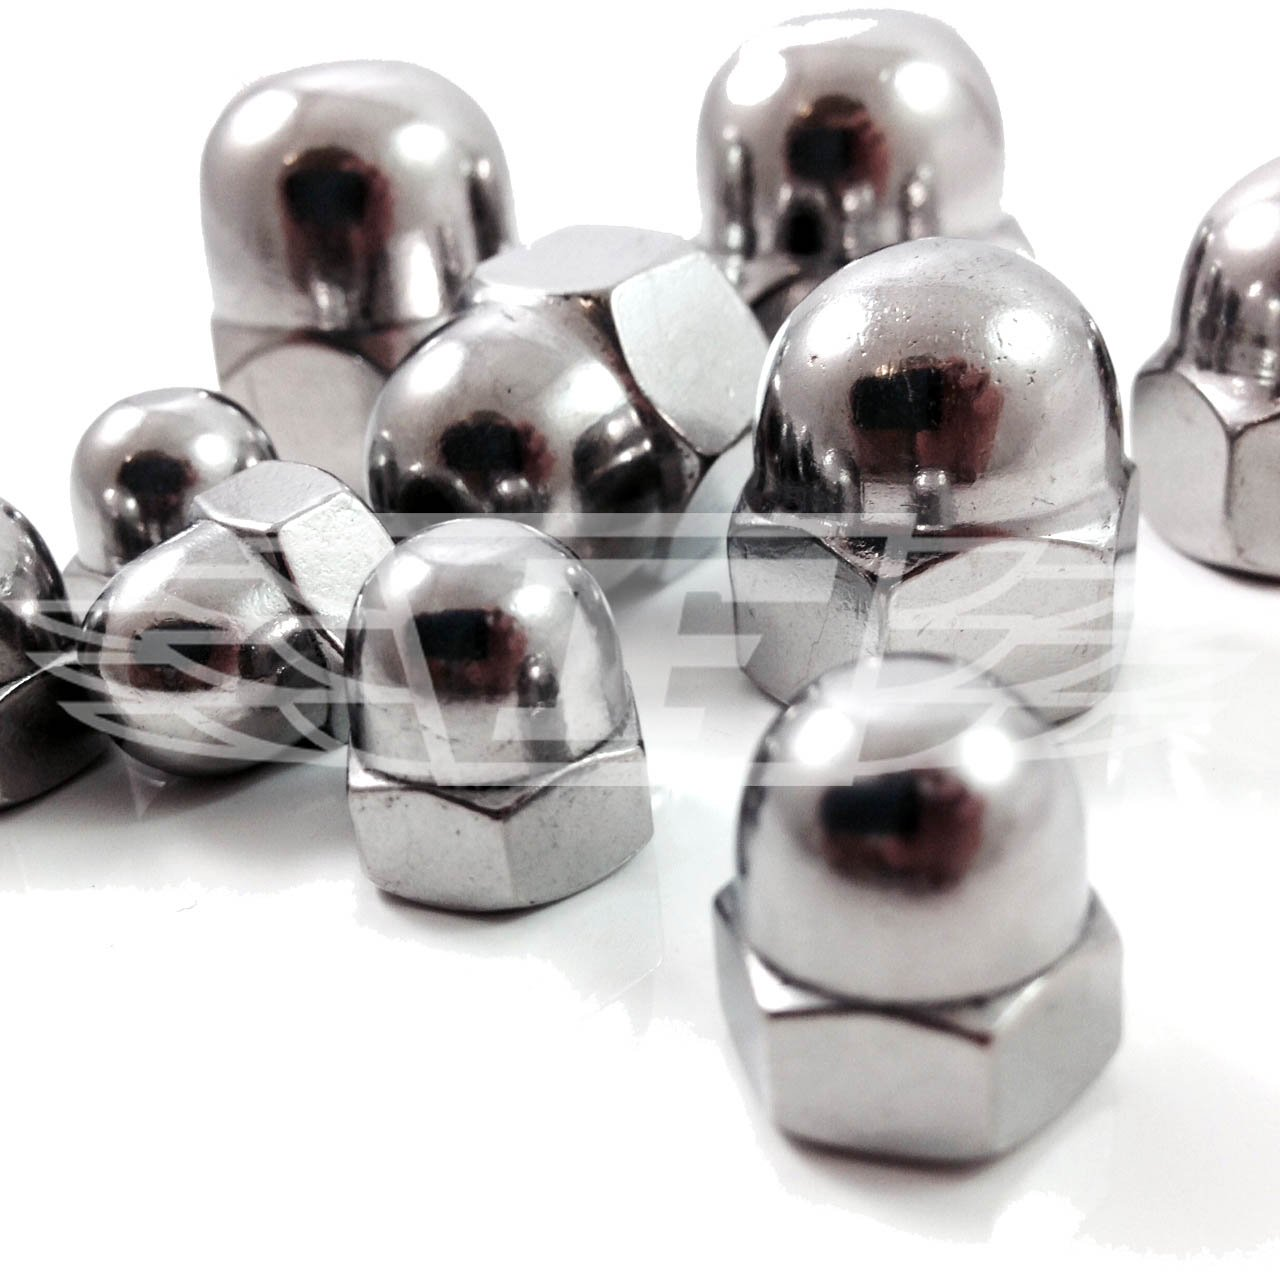 PACK OF 4 x 1/4' UNC A2 STAINLESS DOME COVER NUTS Falcon Workshop Supplies Ltd